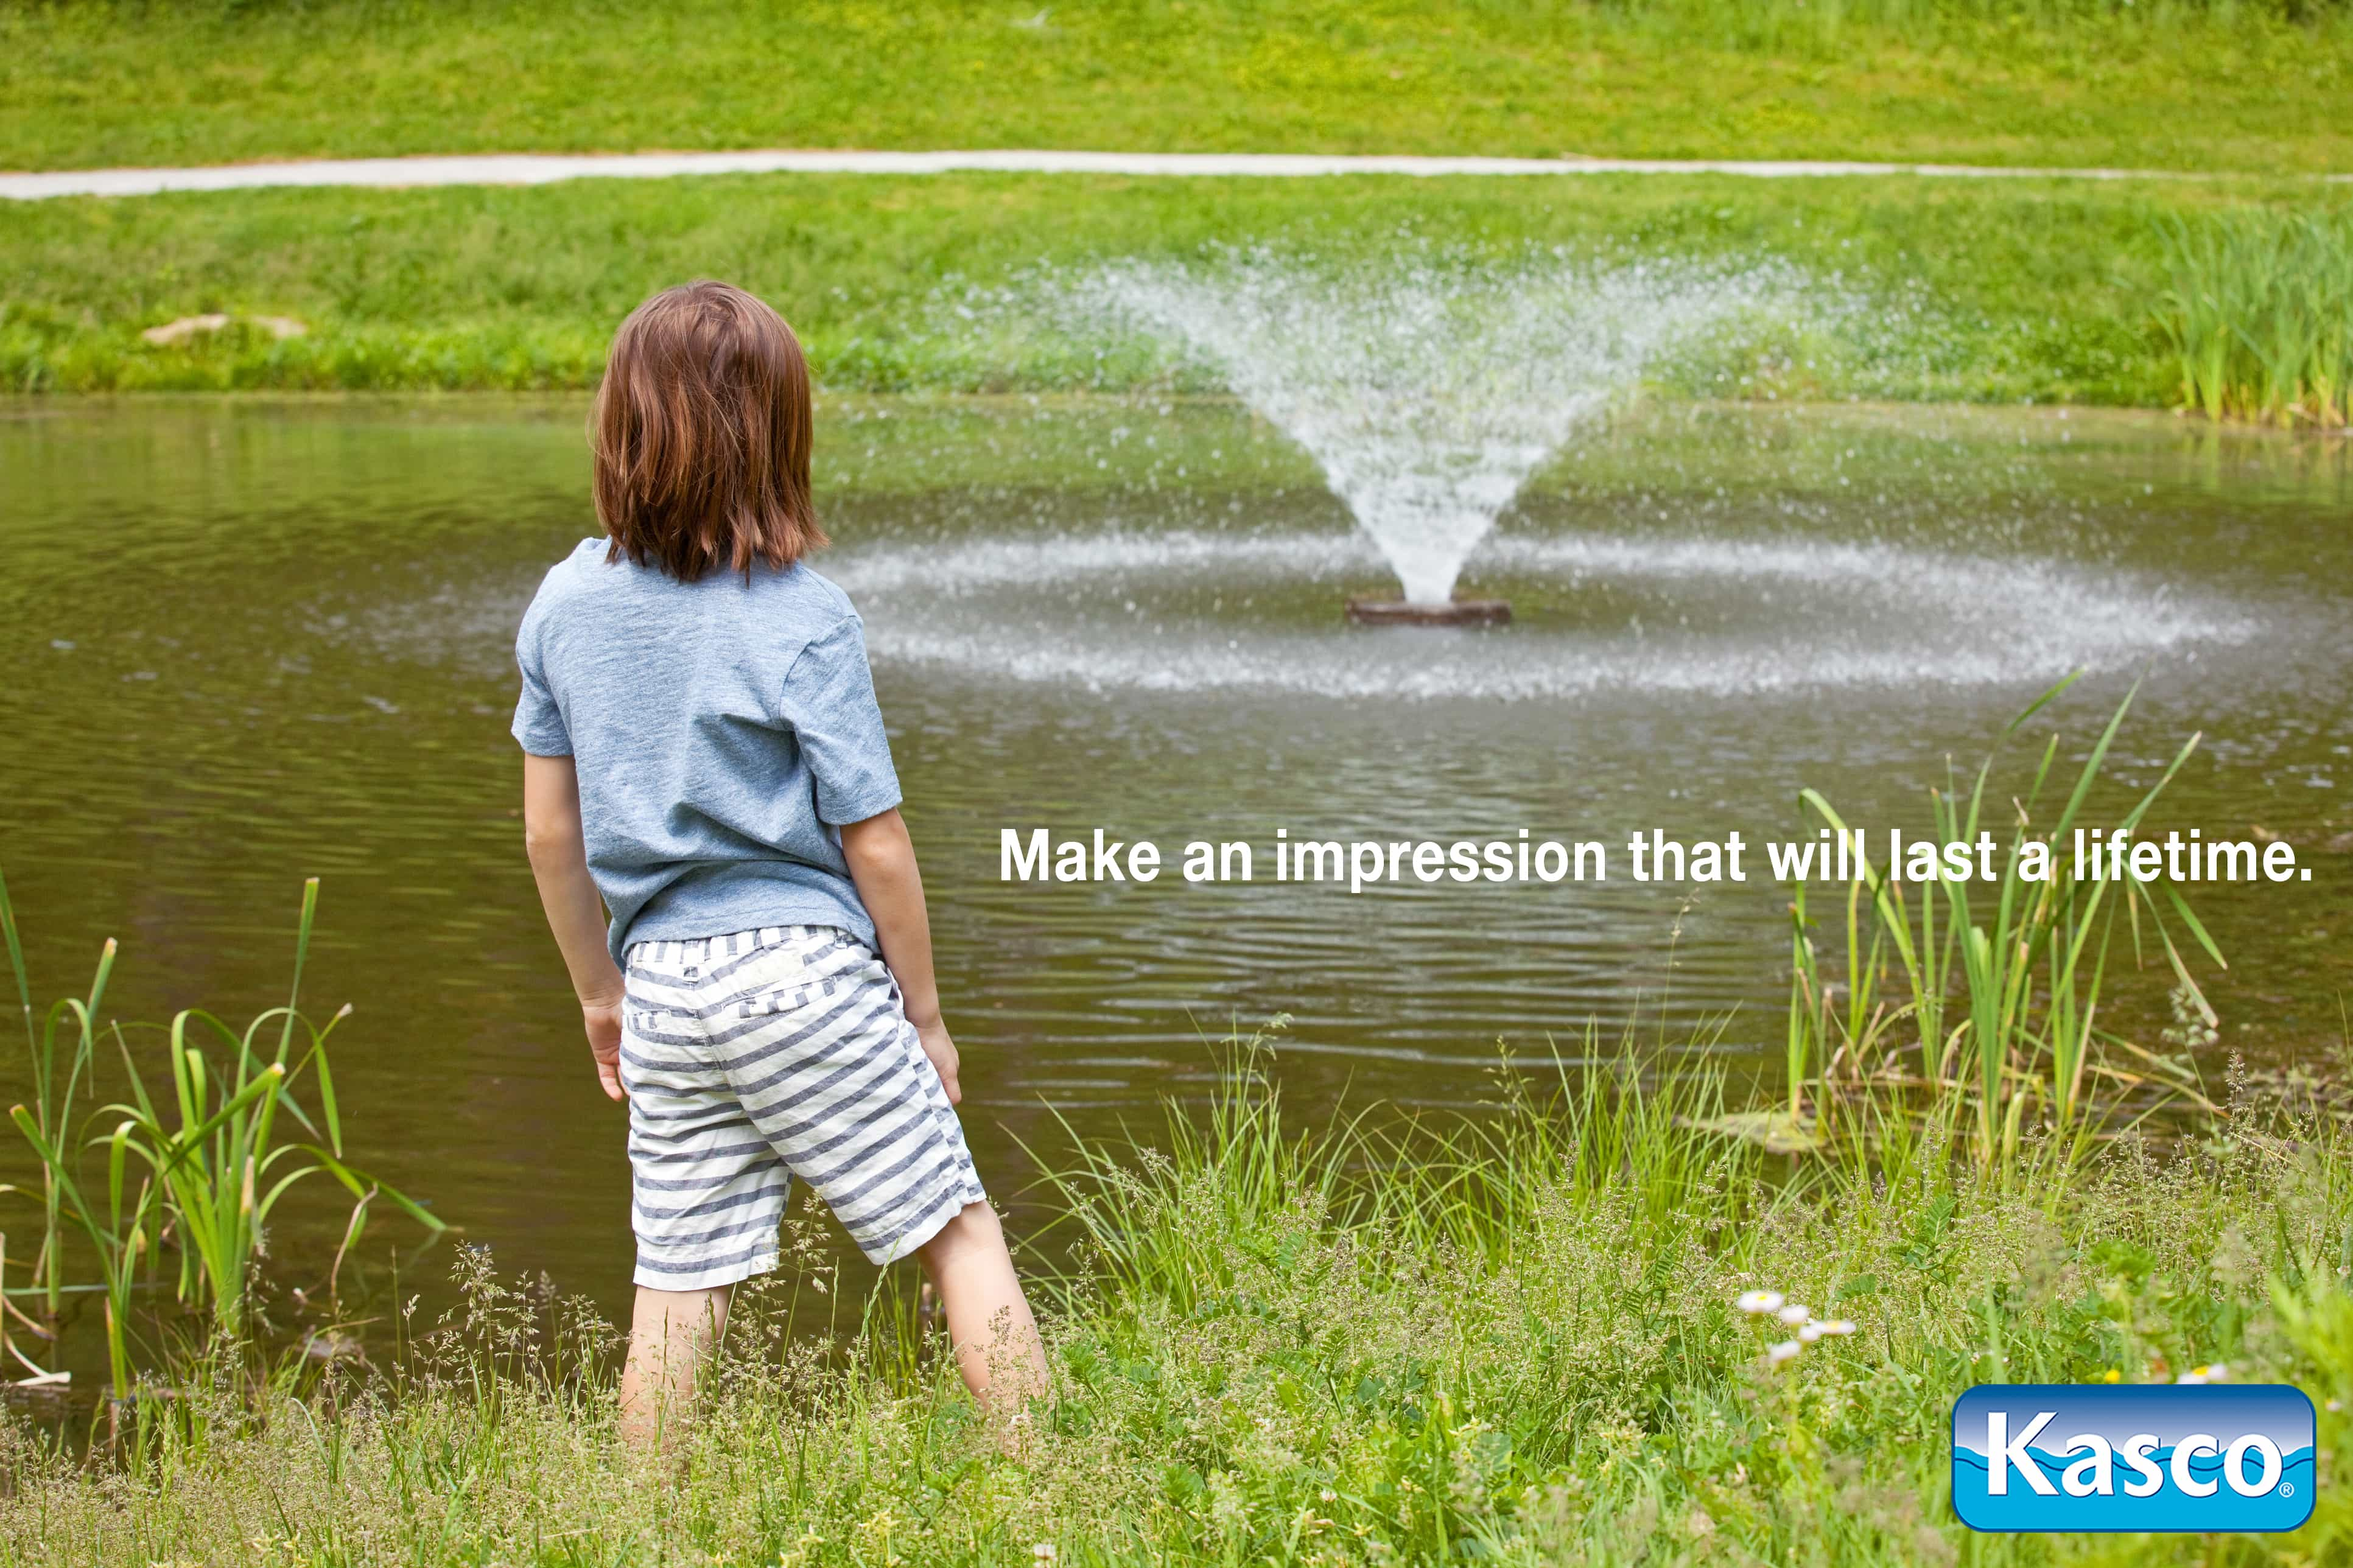 kasco-fountains-make-impressions